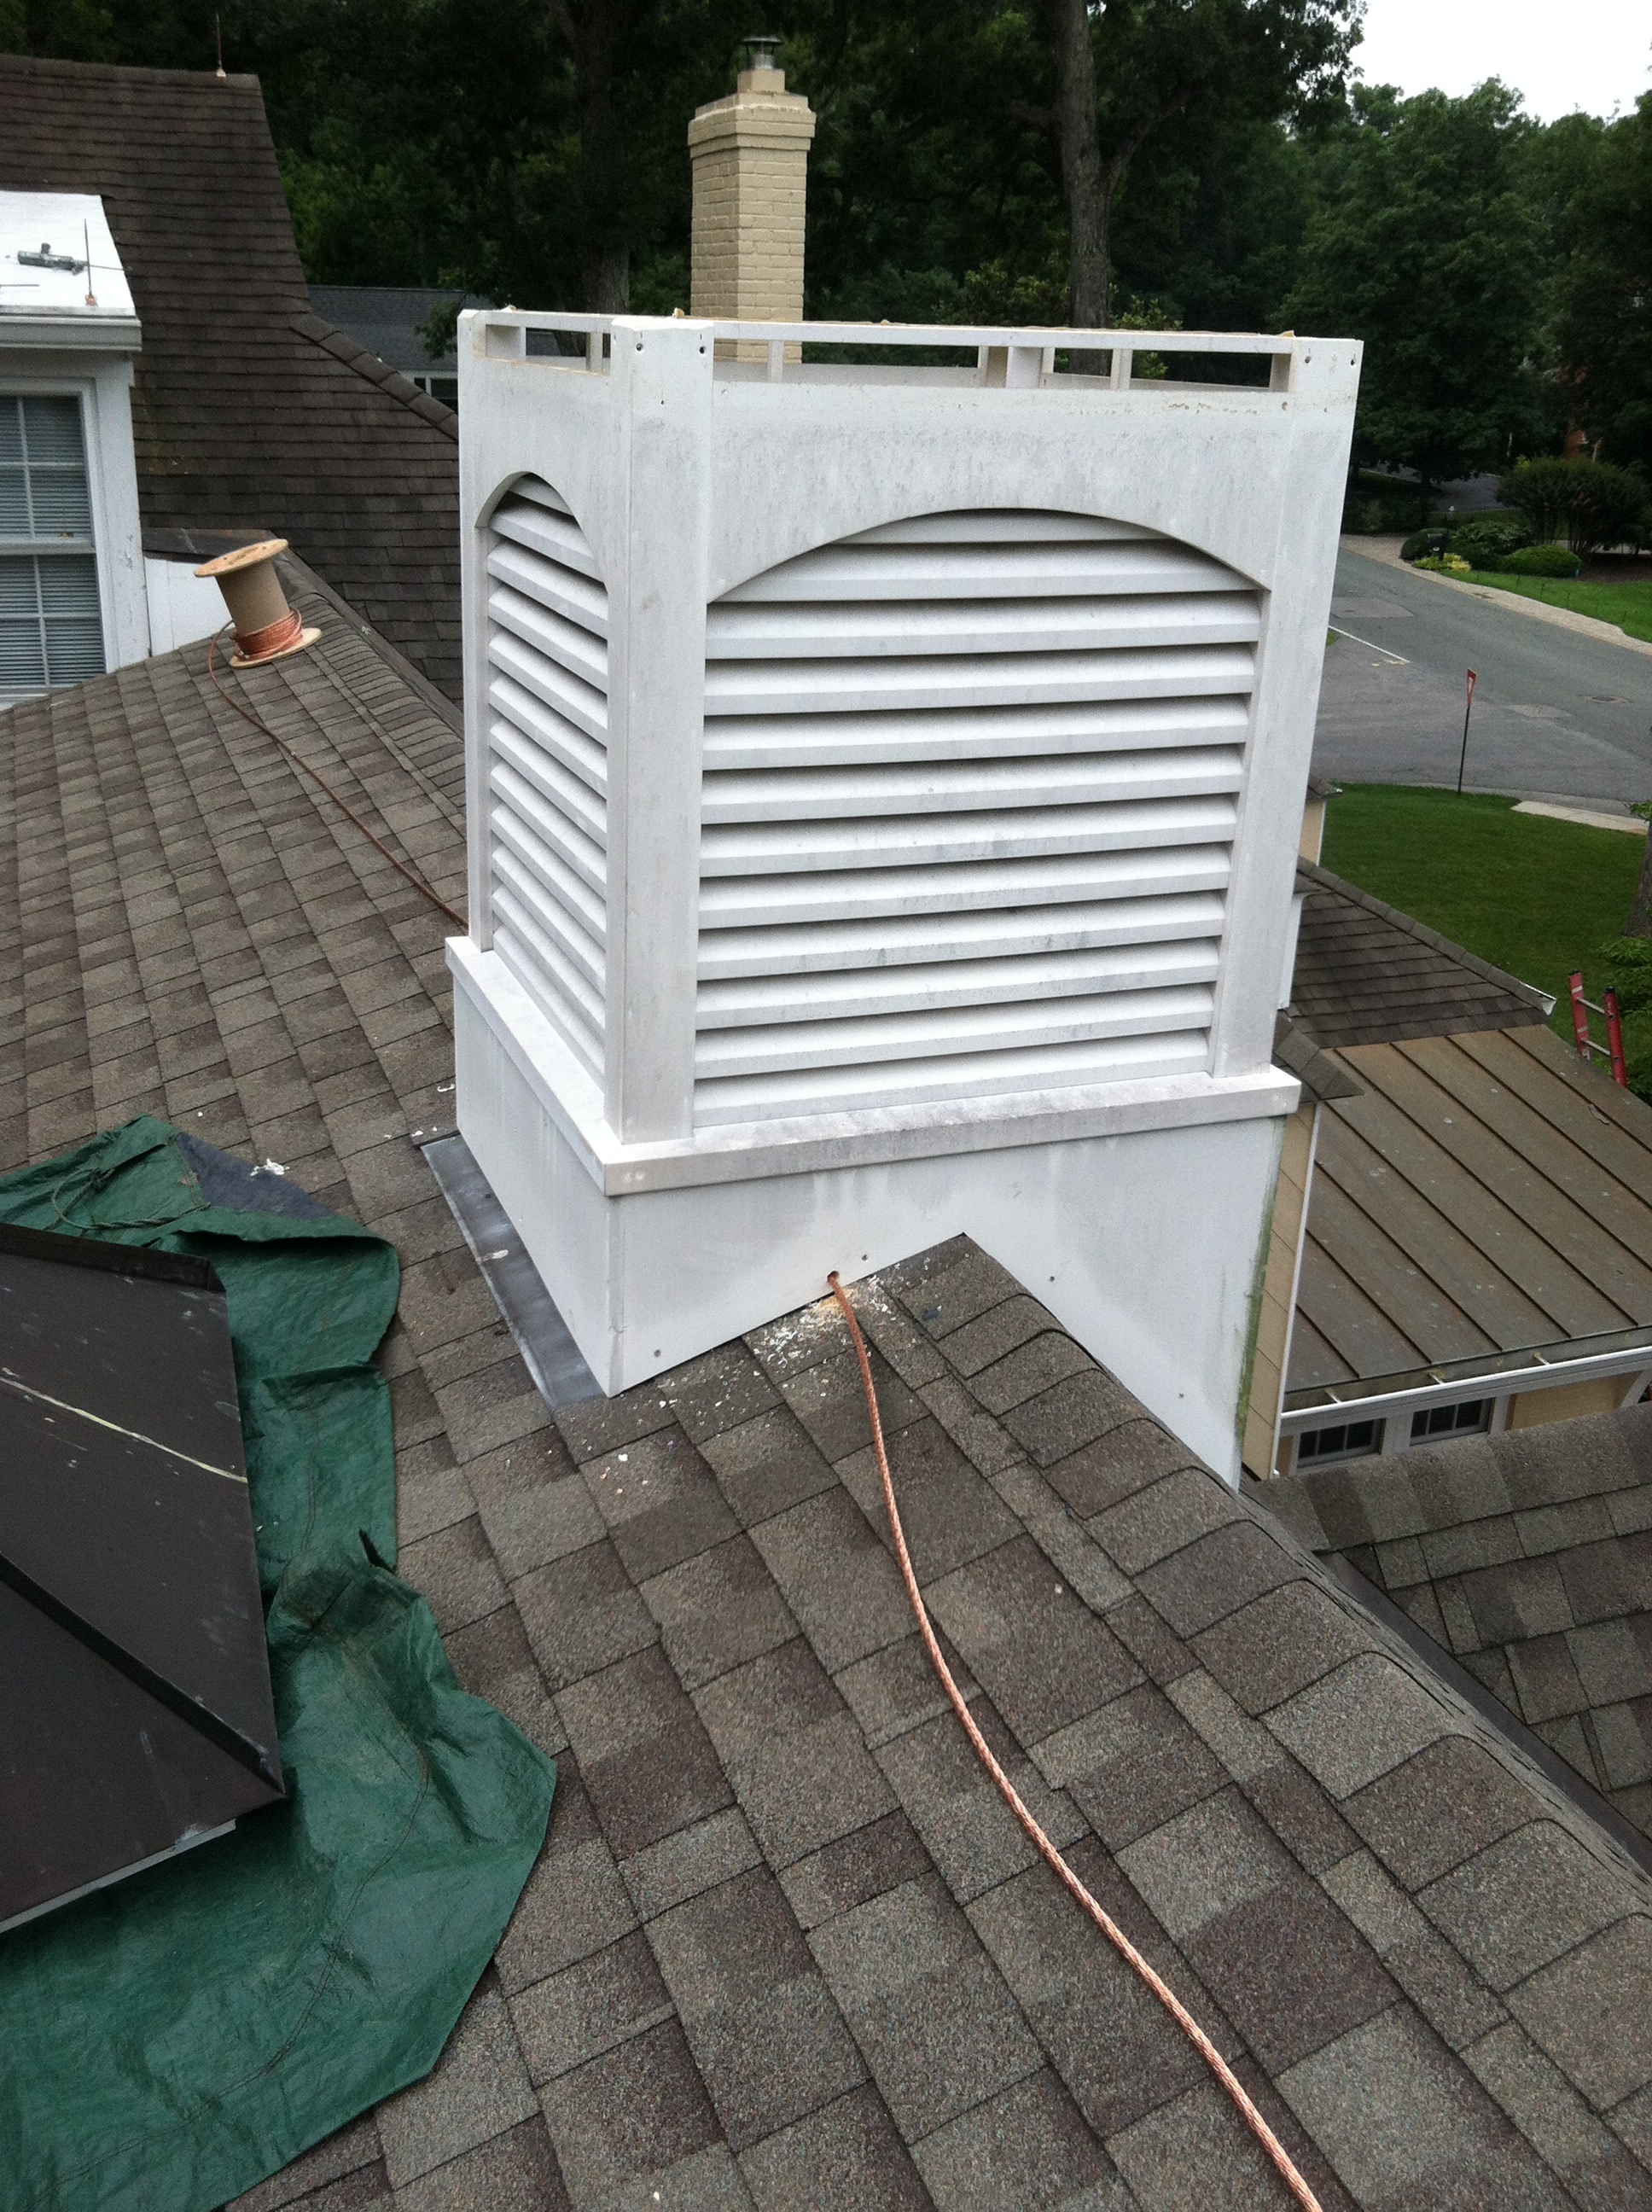 Cupola Conductor Concealment and Decorative Finial Install